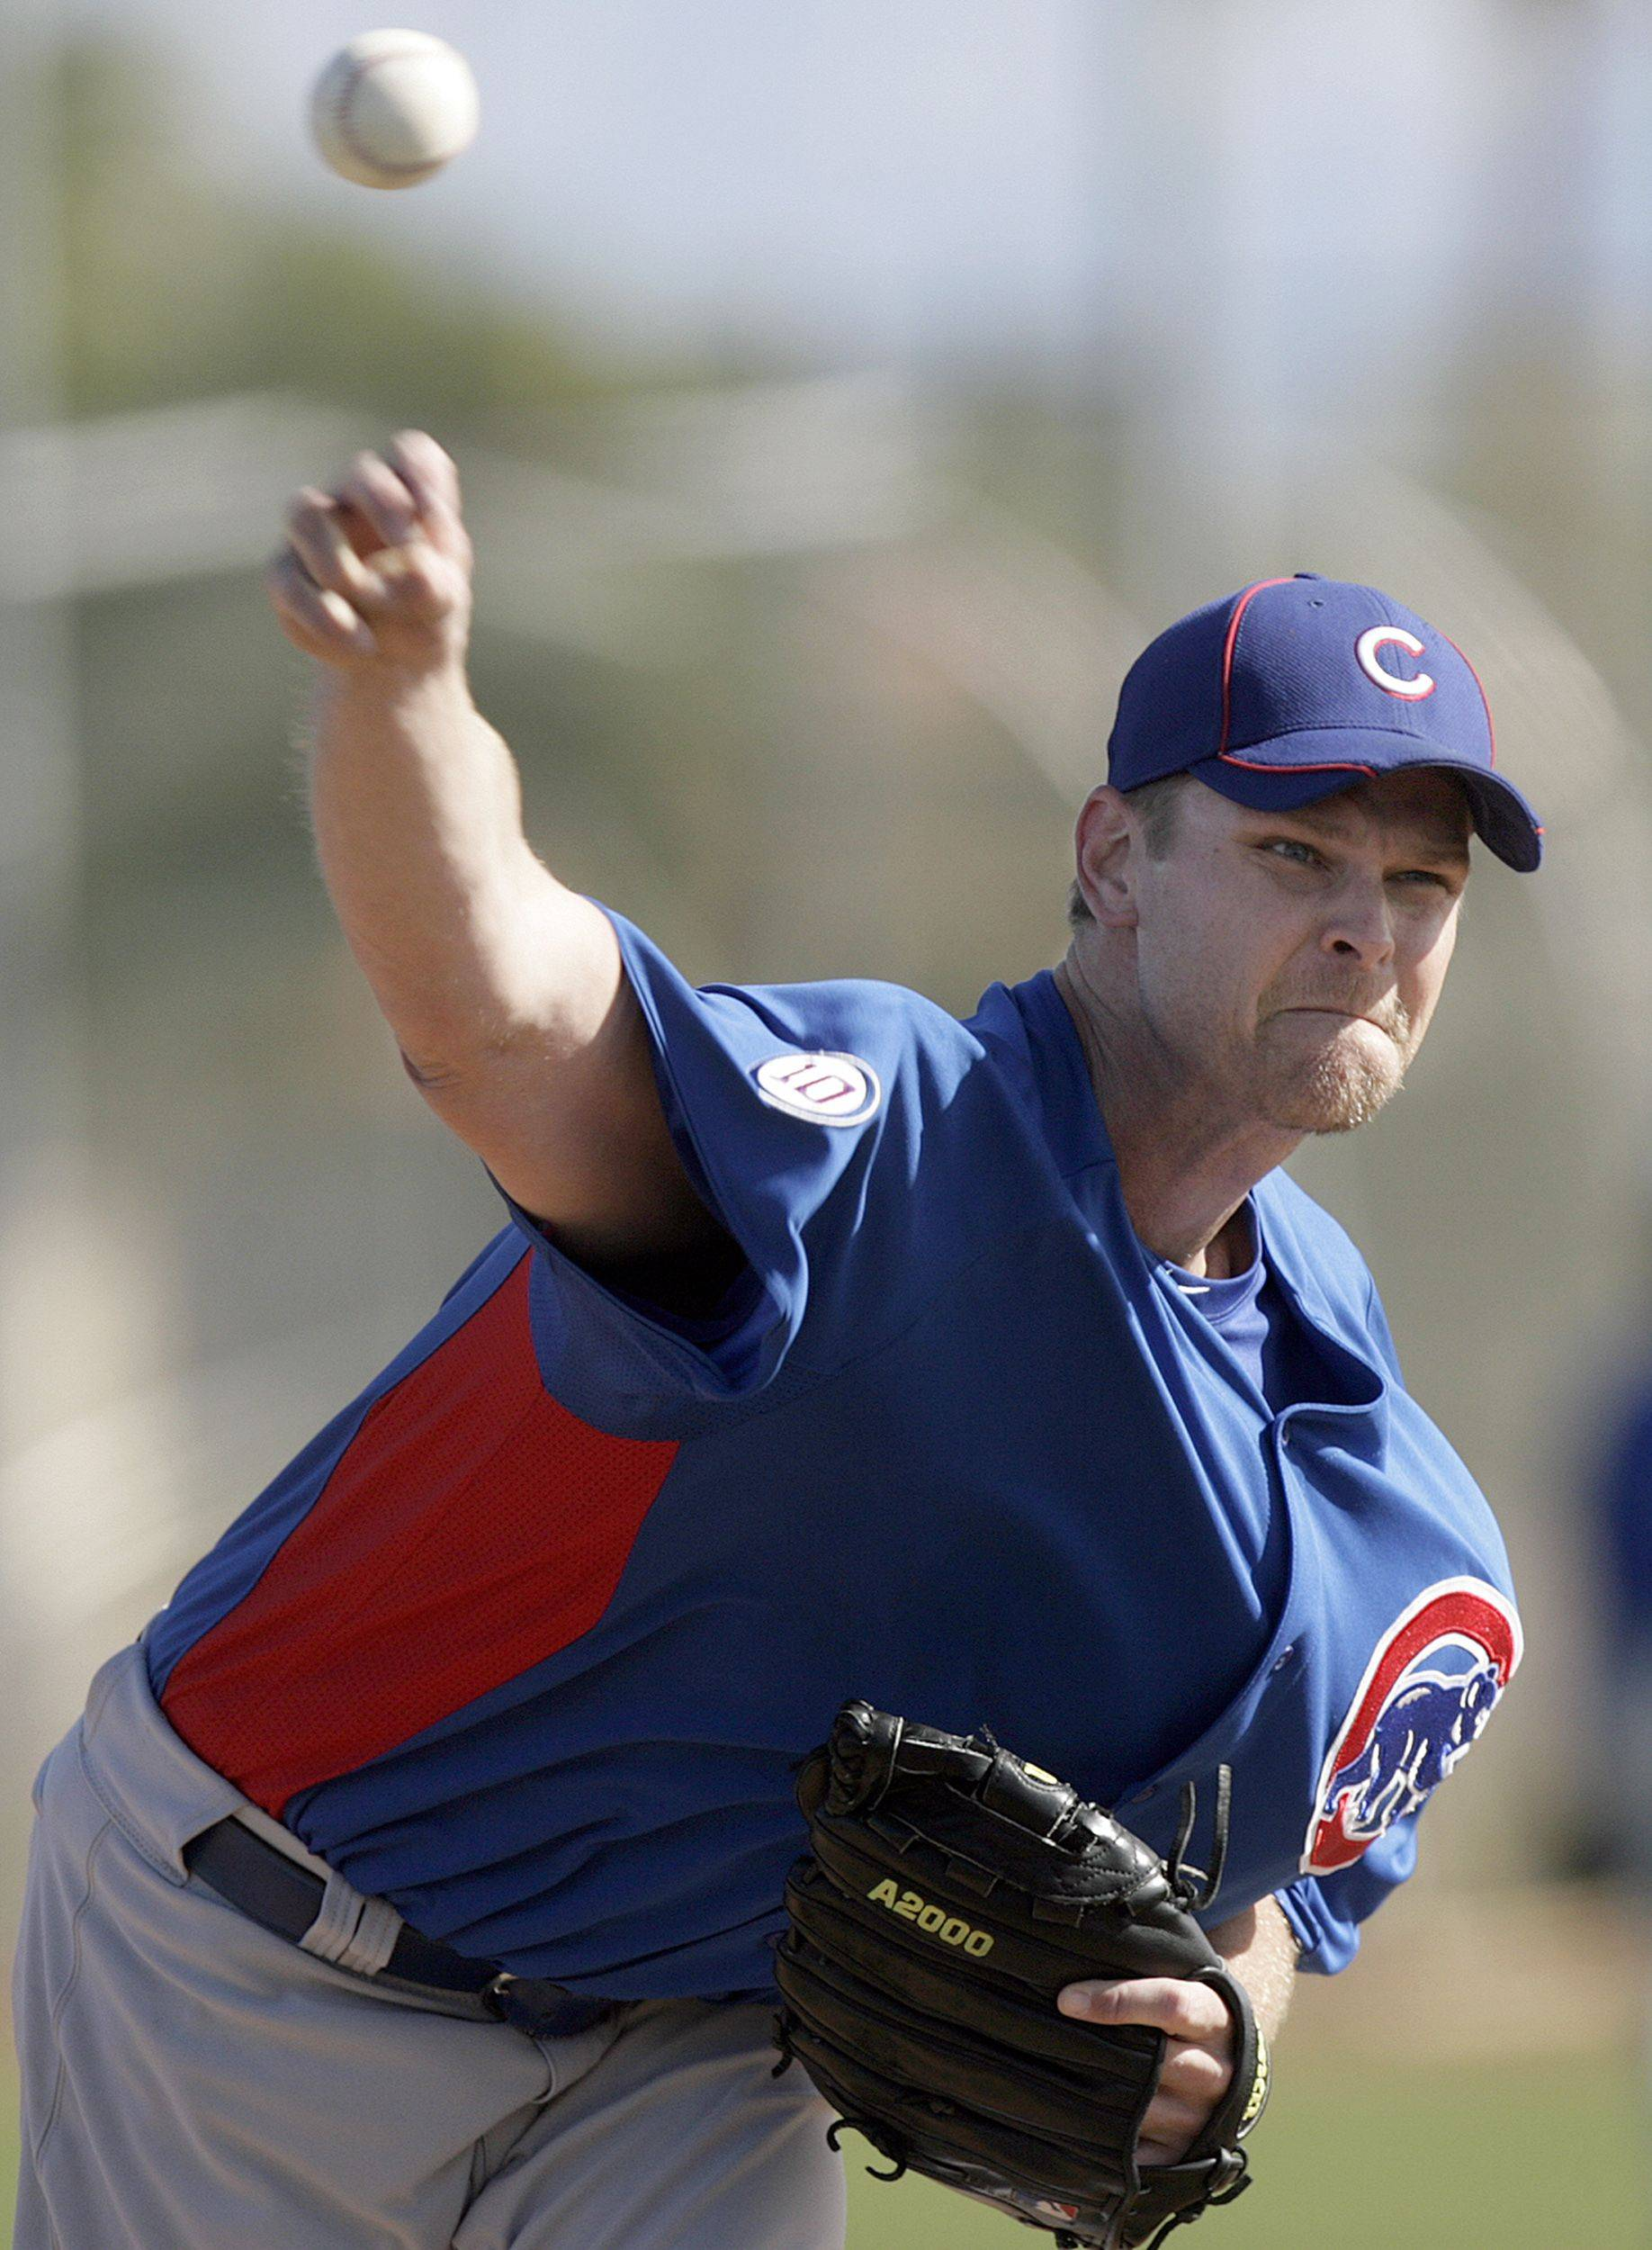 Chicago Cubs pitcher Kerry Wood throws during batting practice at the team's spring training baseball facility Monday, Feb. 21, 2011, in Mesa, Ariz.